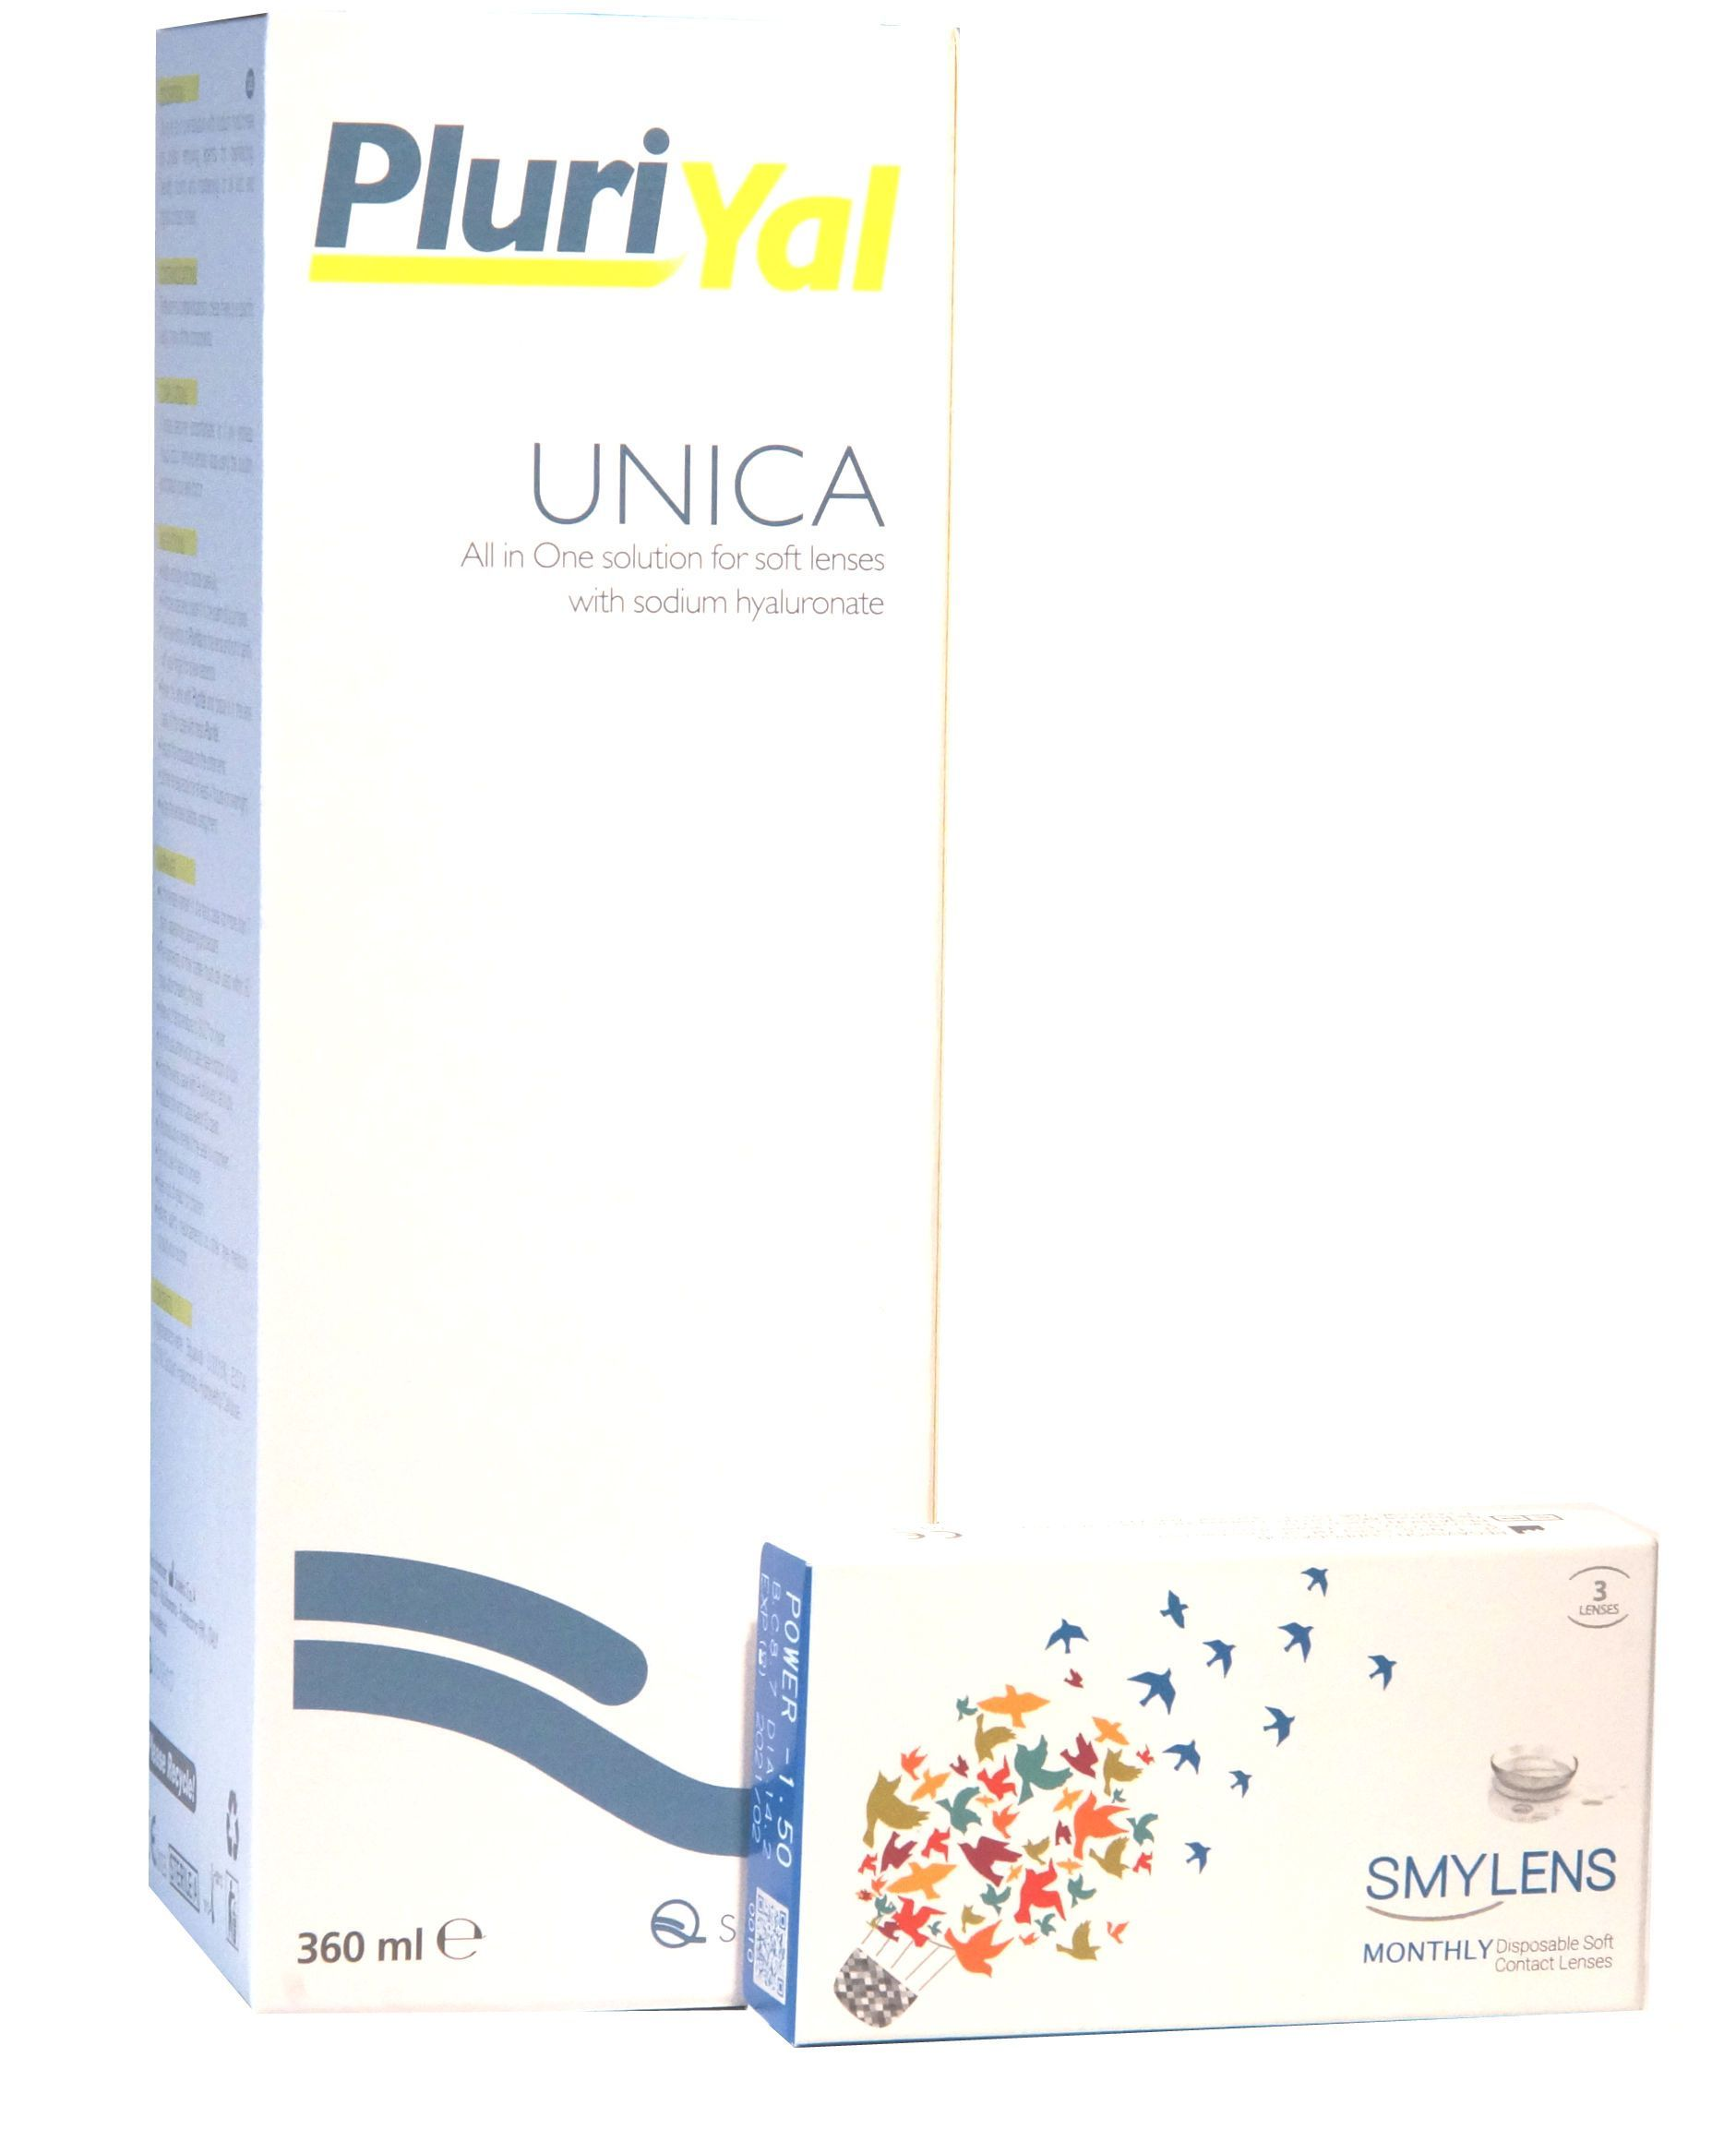 SUPEROFFERTA: Smylens 3 Lenti+ Soluzione Unica PluriYal 360ml ...